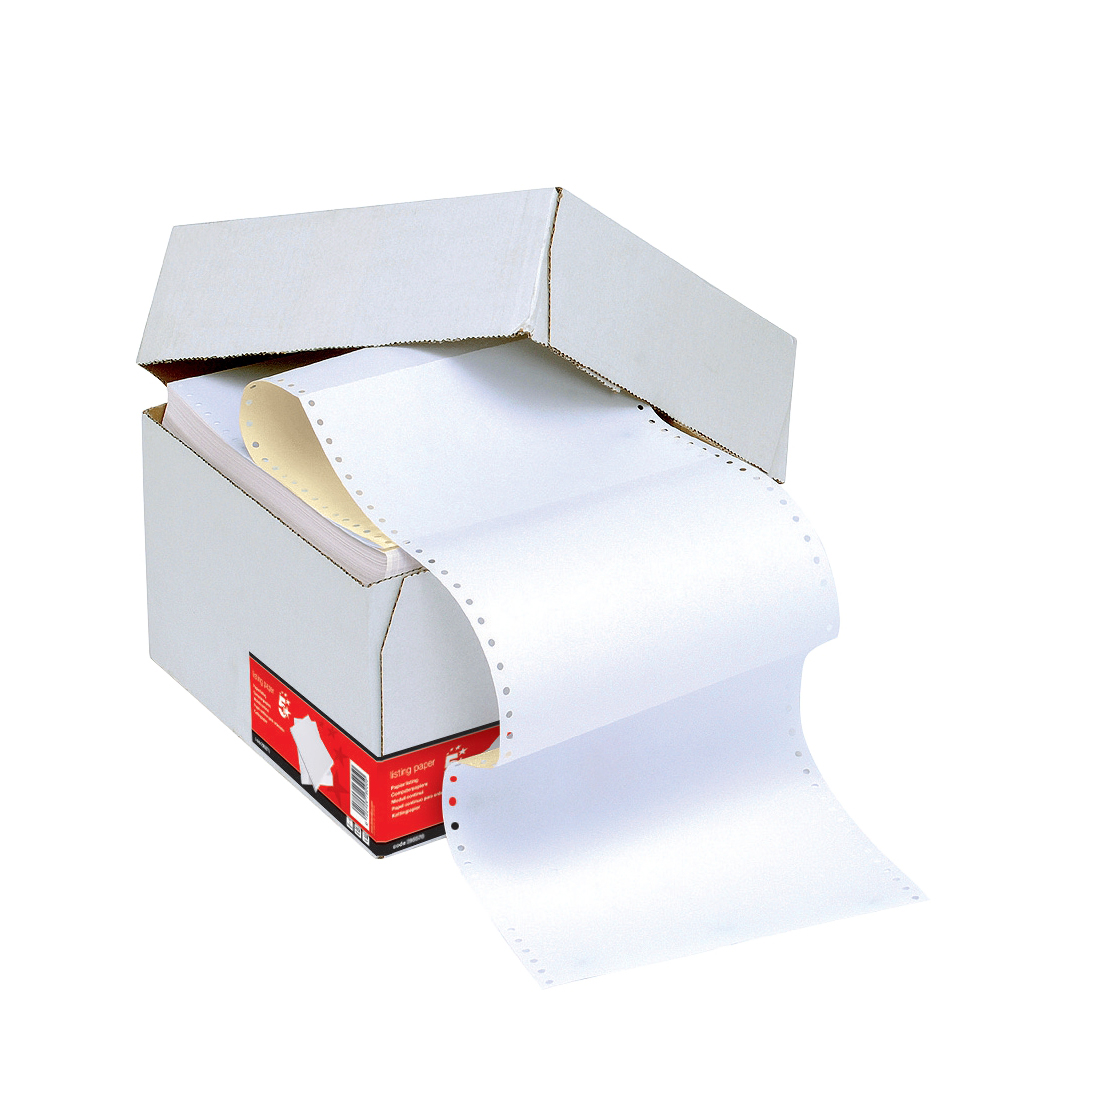 Listing Paper 5 Star Office Listing Paper 2-Part Carbonless Micro-perforated 80/55gsm A4 White/Yellow 1000 Sheets